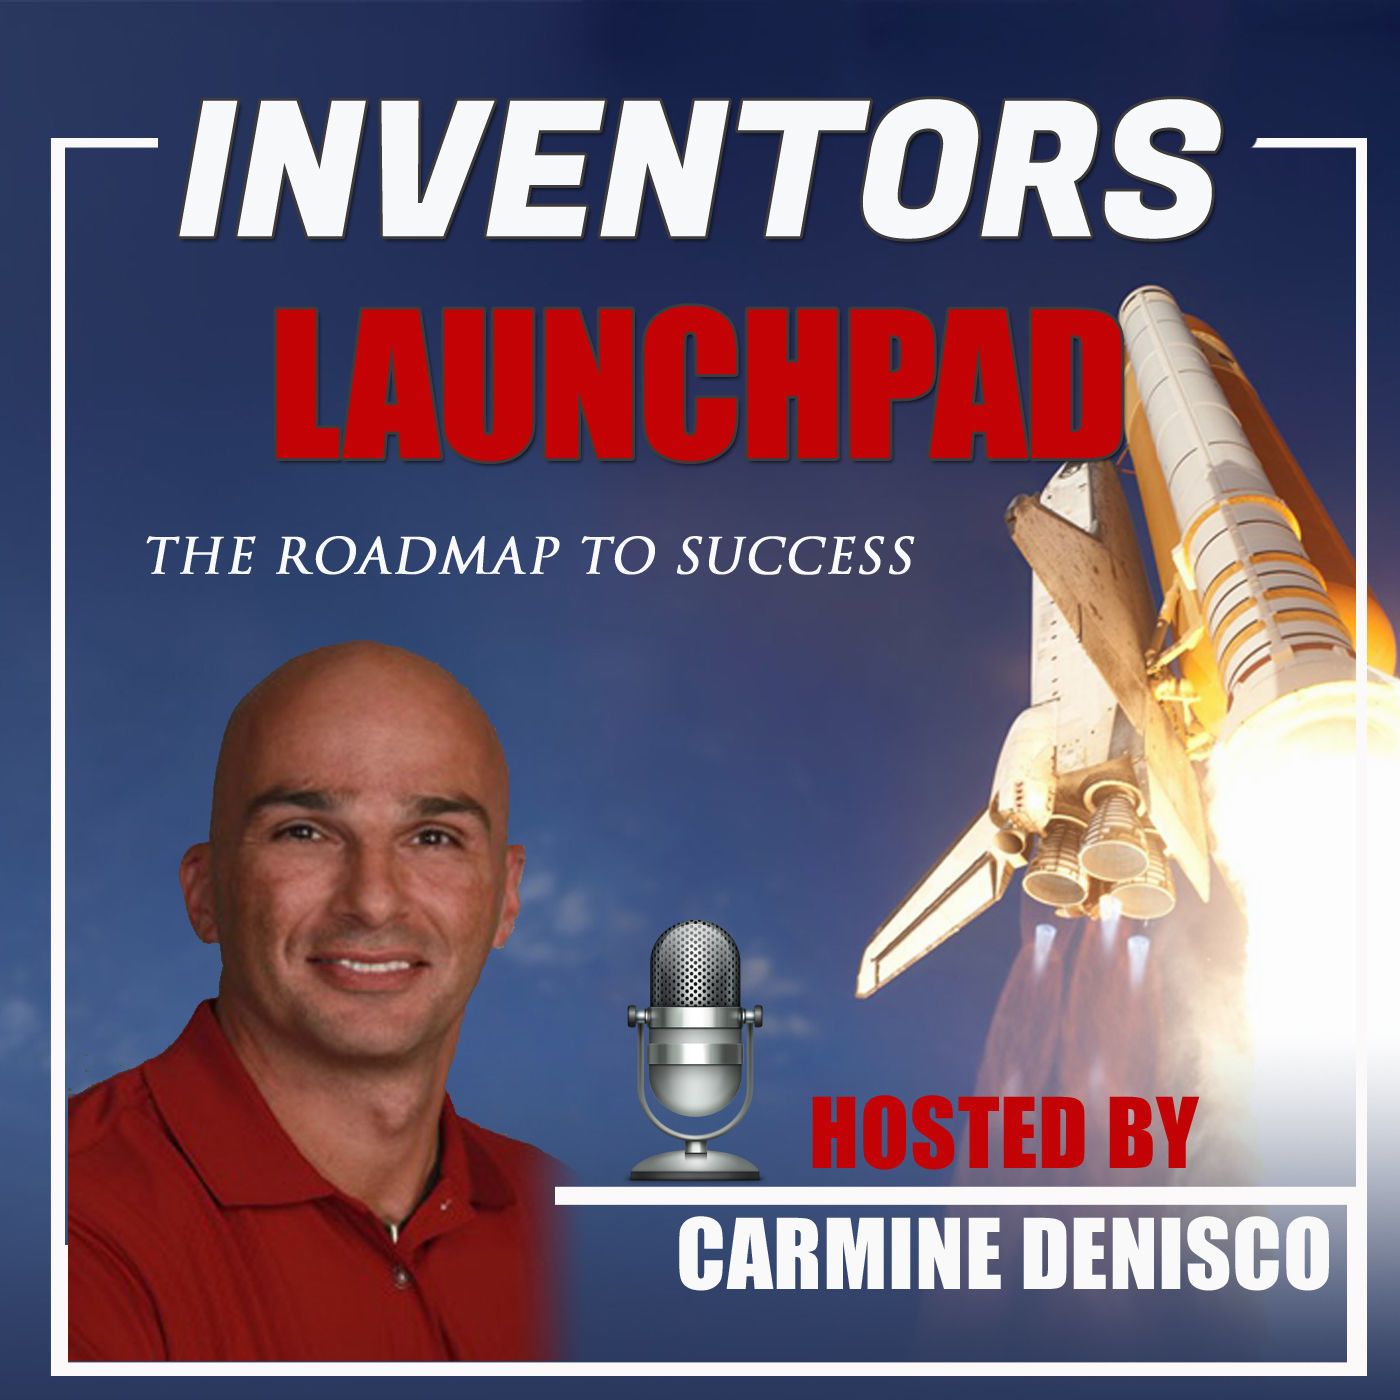 Artwork for S2e67 – Invention Success Story; Listen to the Hang-O-Matic Story